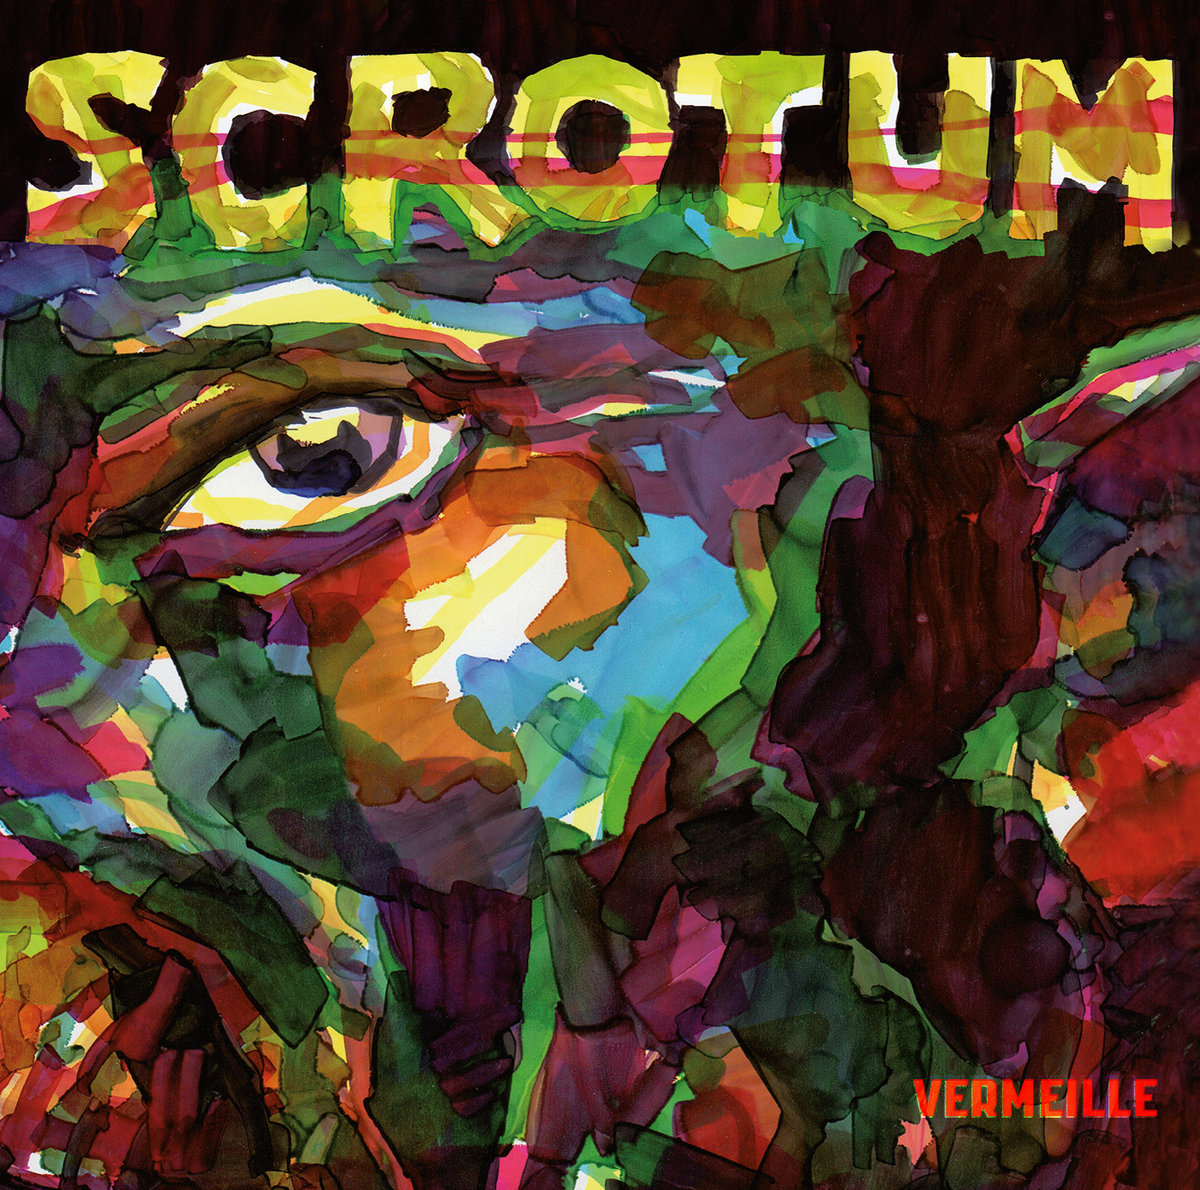 Vermeille (CD) | Scrotum